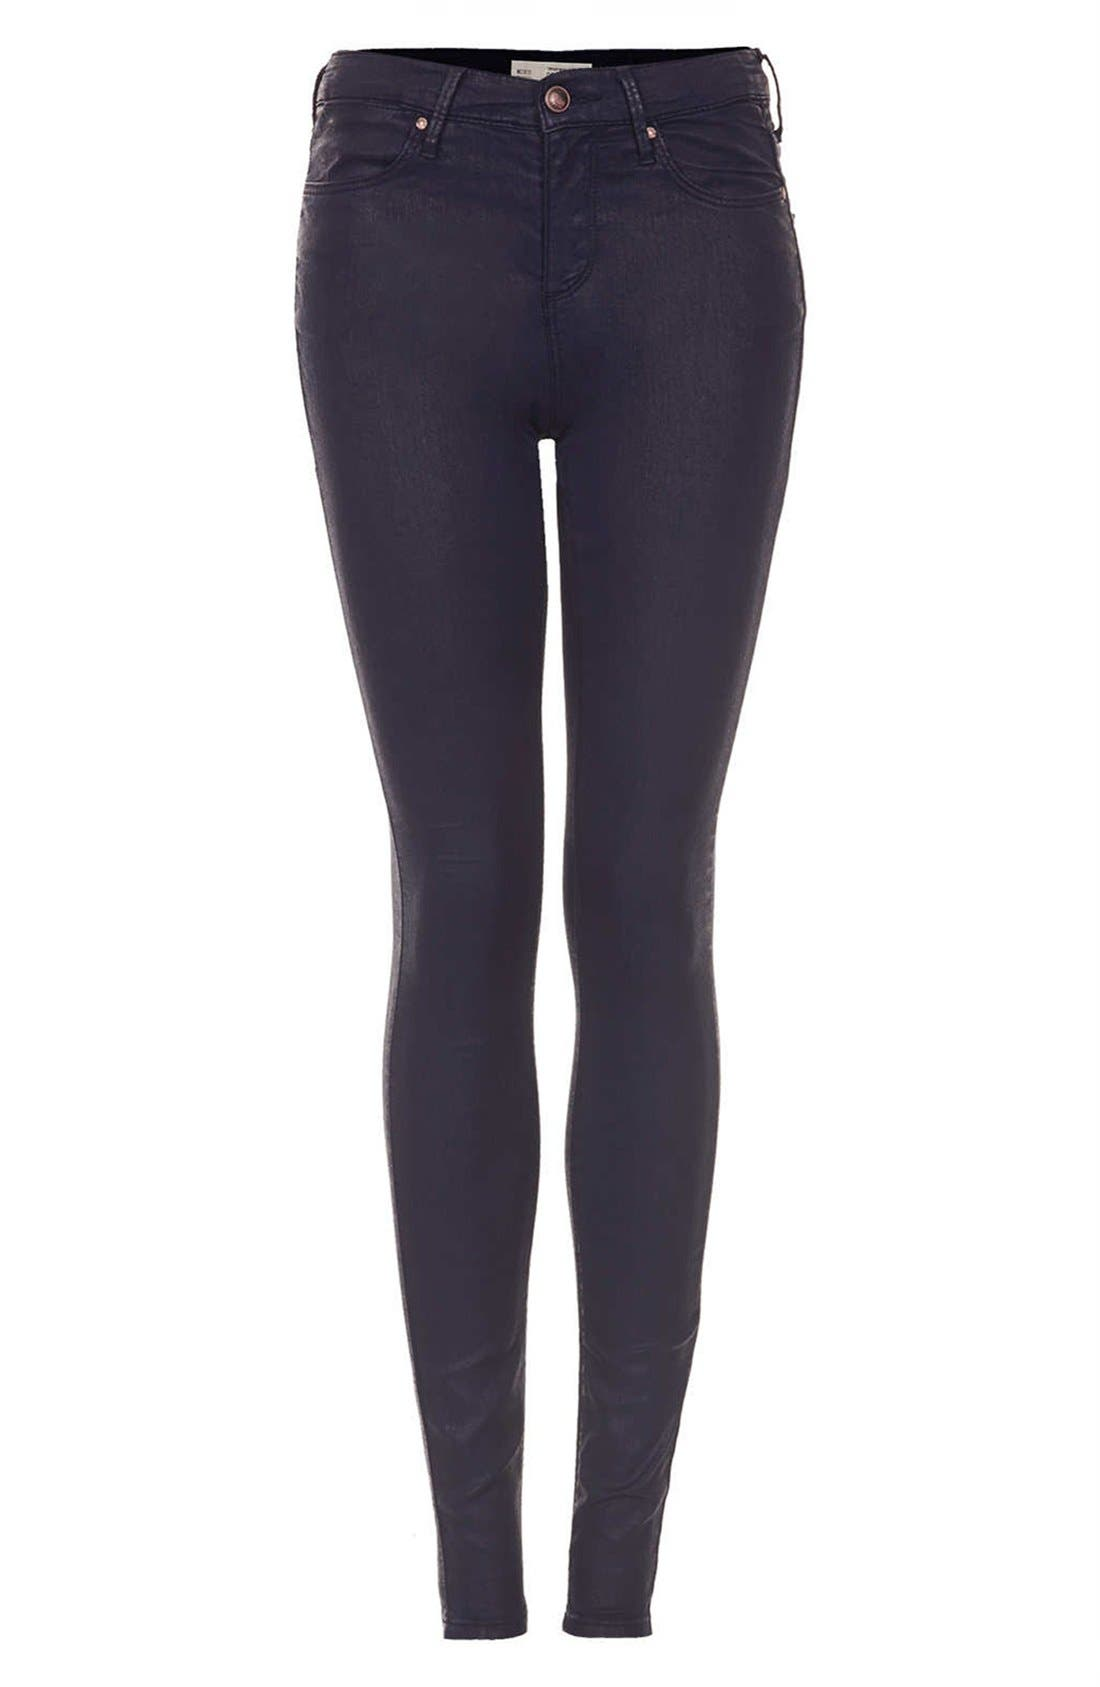 Alternate Image 3  - Topshop Moto 'Leigh' Coated High Rise Skinny Jeans (Navy Blue) (Short)